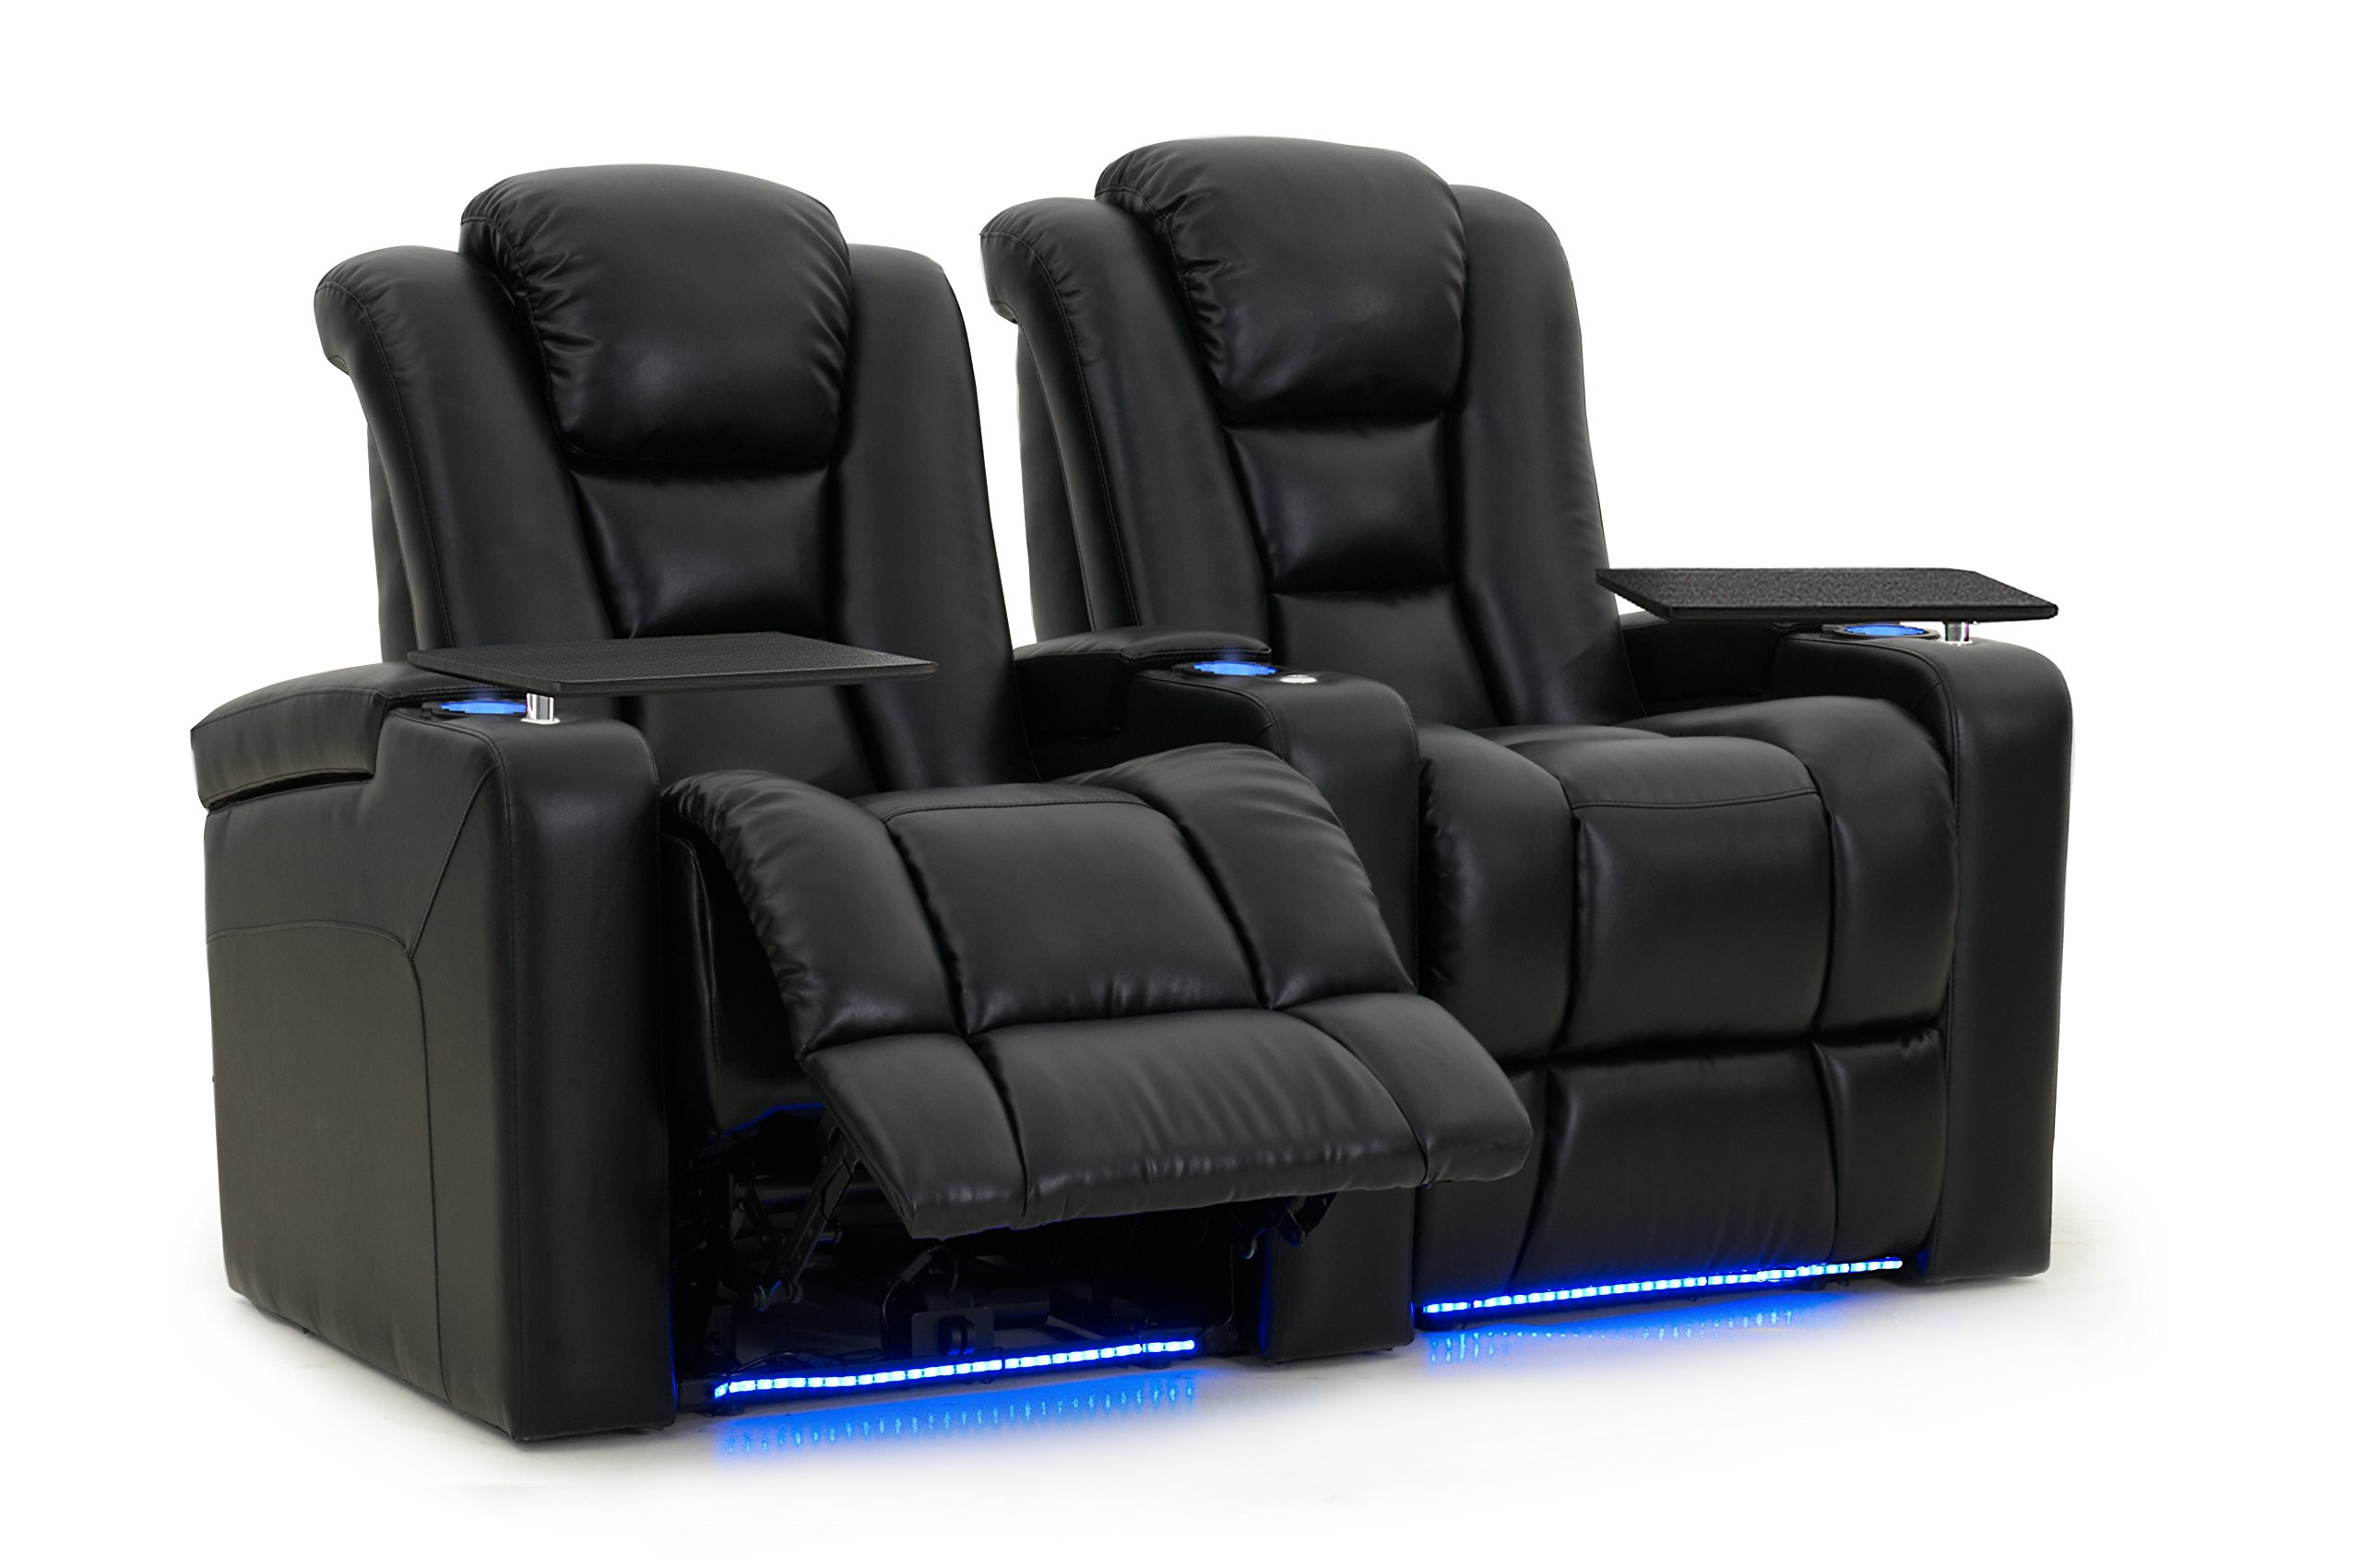 Mega XL950 - Octane Seating - Home Stadium Seating - Black Bonded Leather - Power Recline - Motorized Headrest - Lighted Cup Holders - Straight Row 2 by Octane Seating